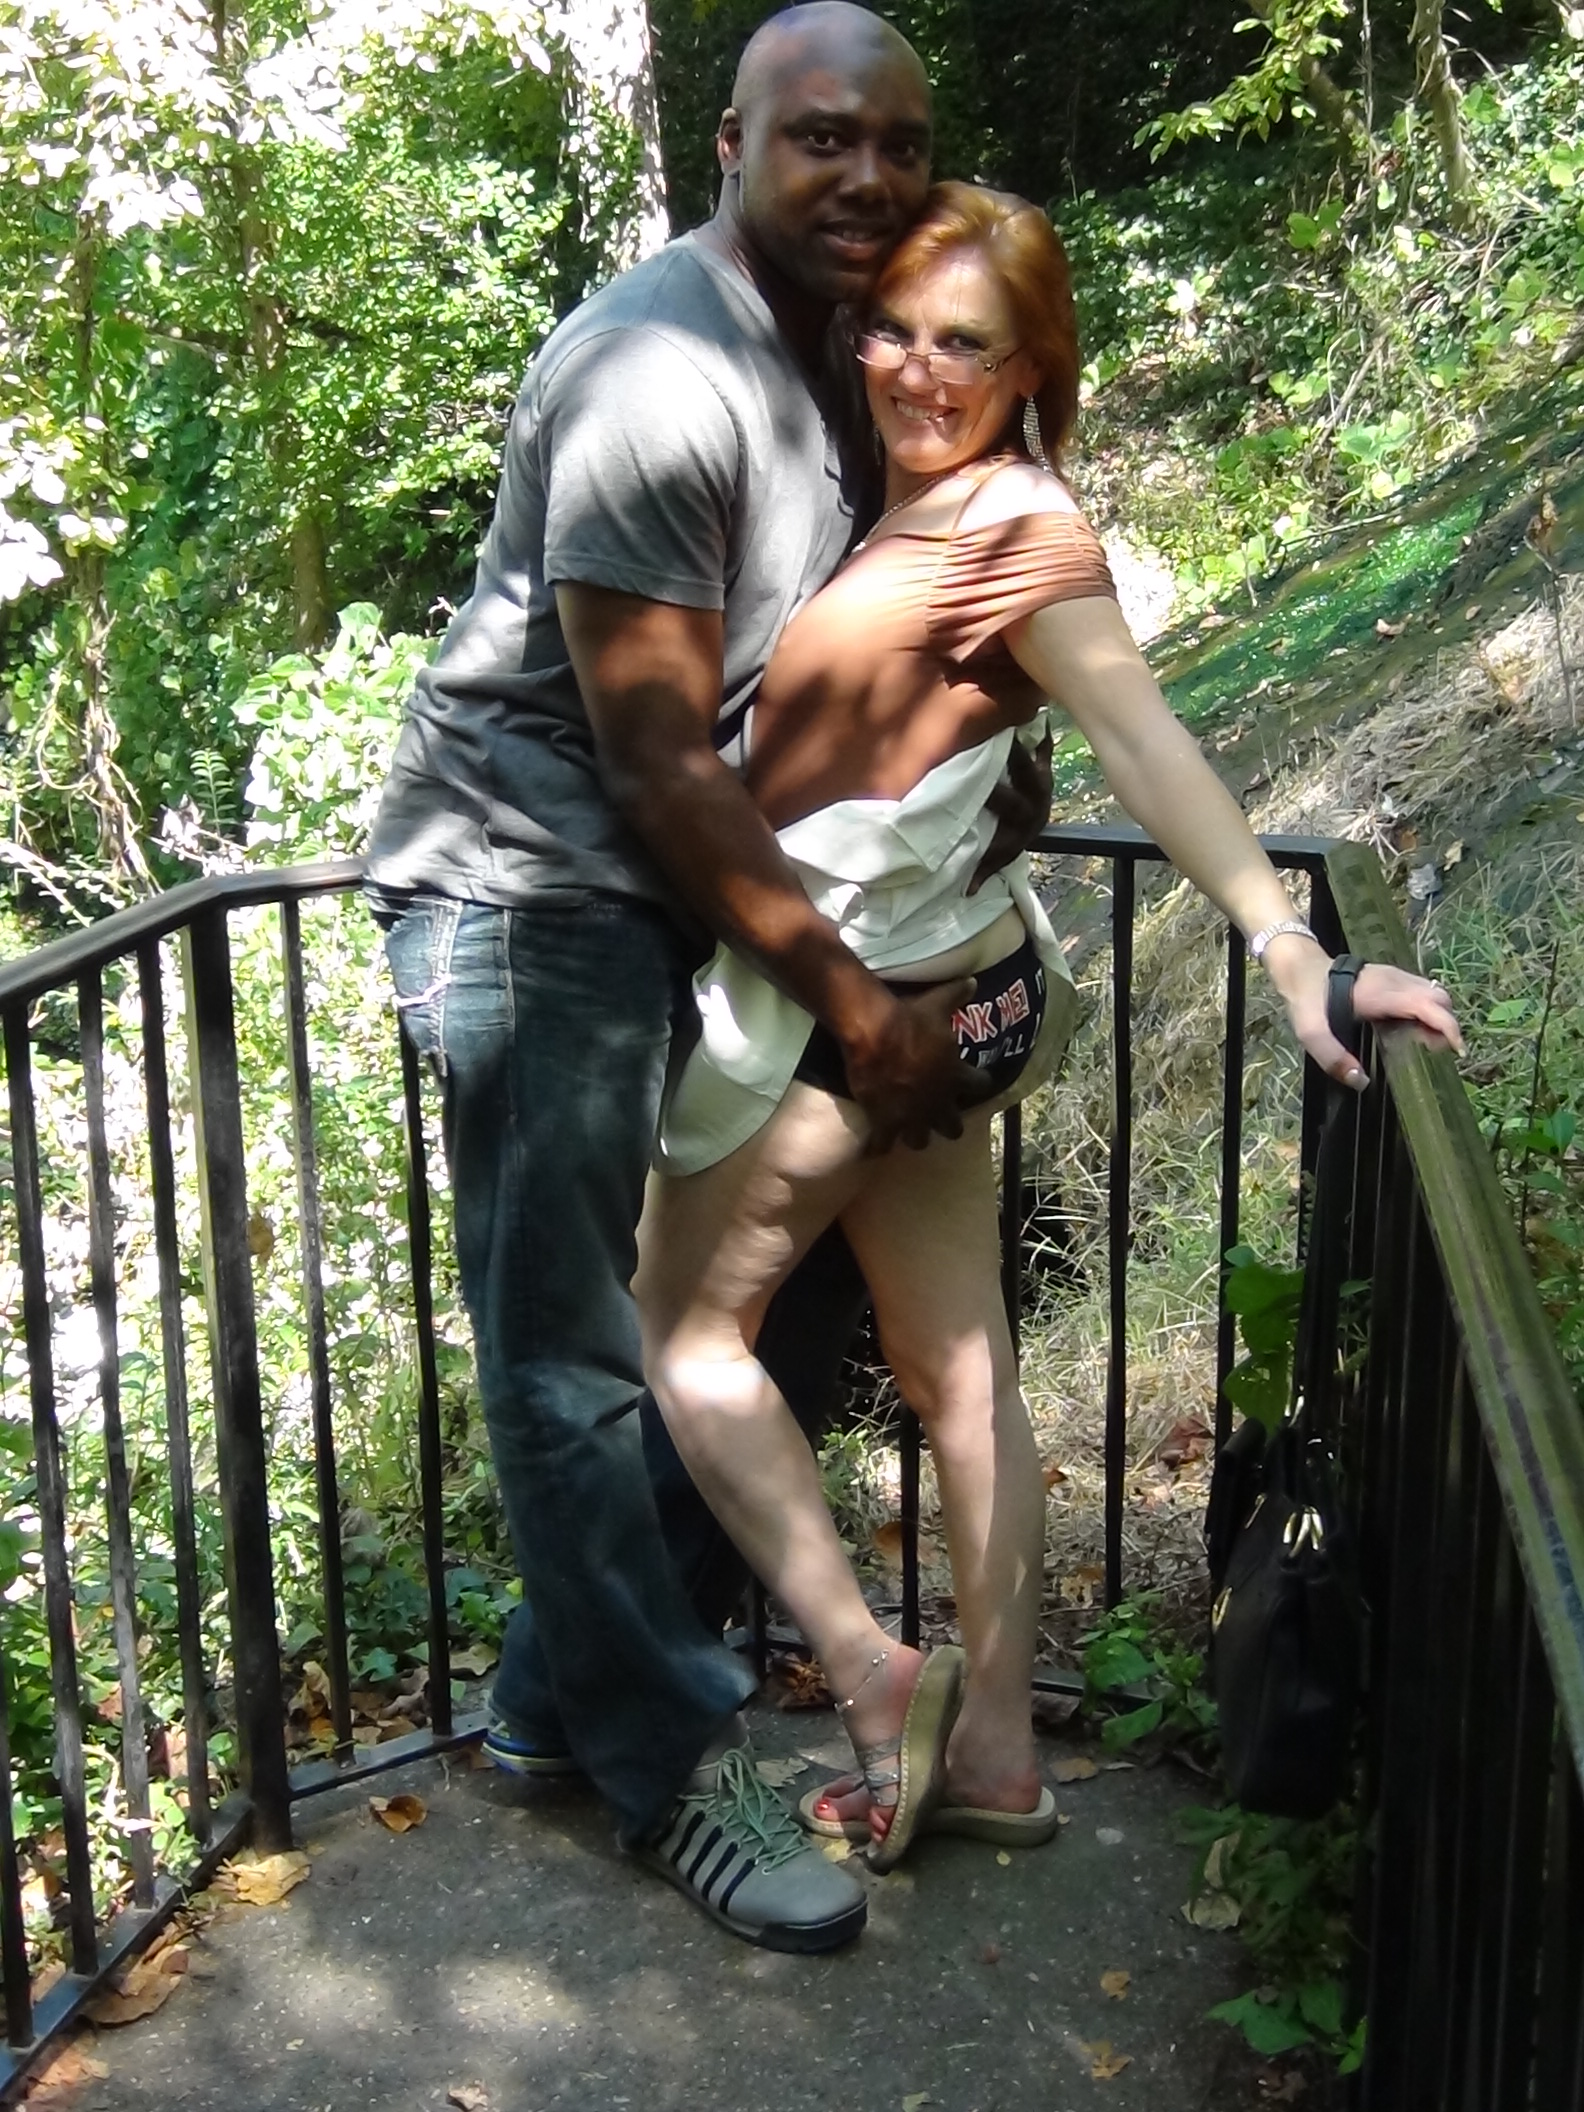 my mom with her lover | amateur interracial community - cuckold